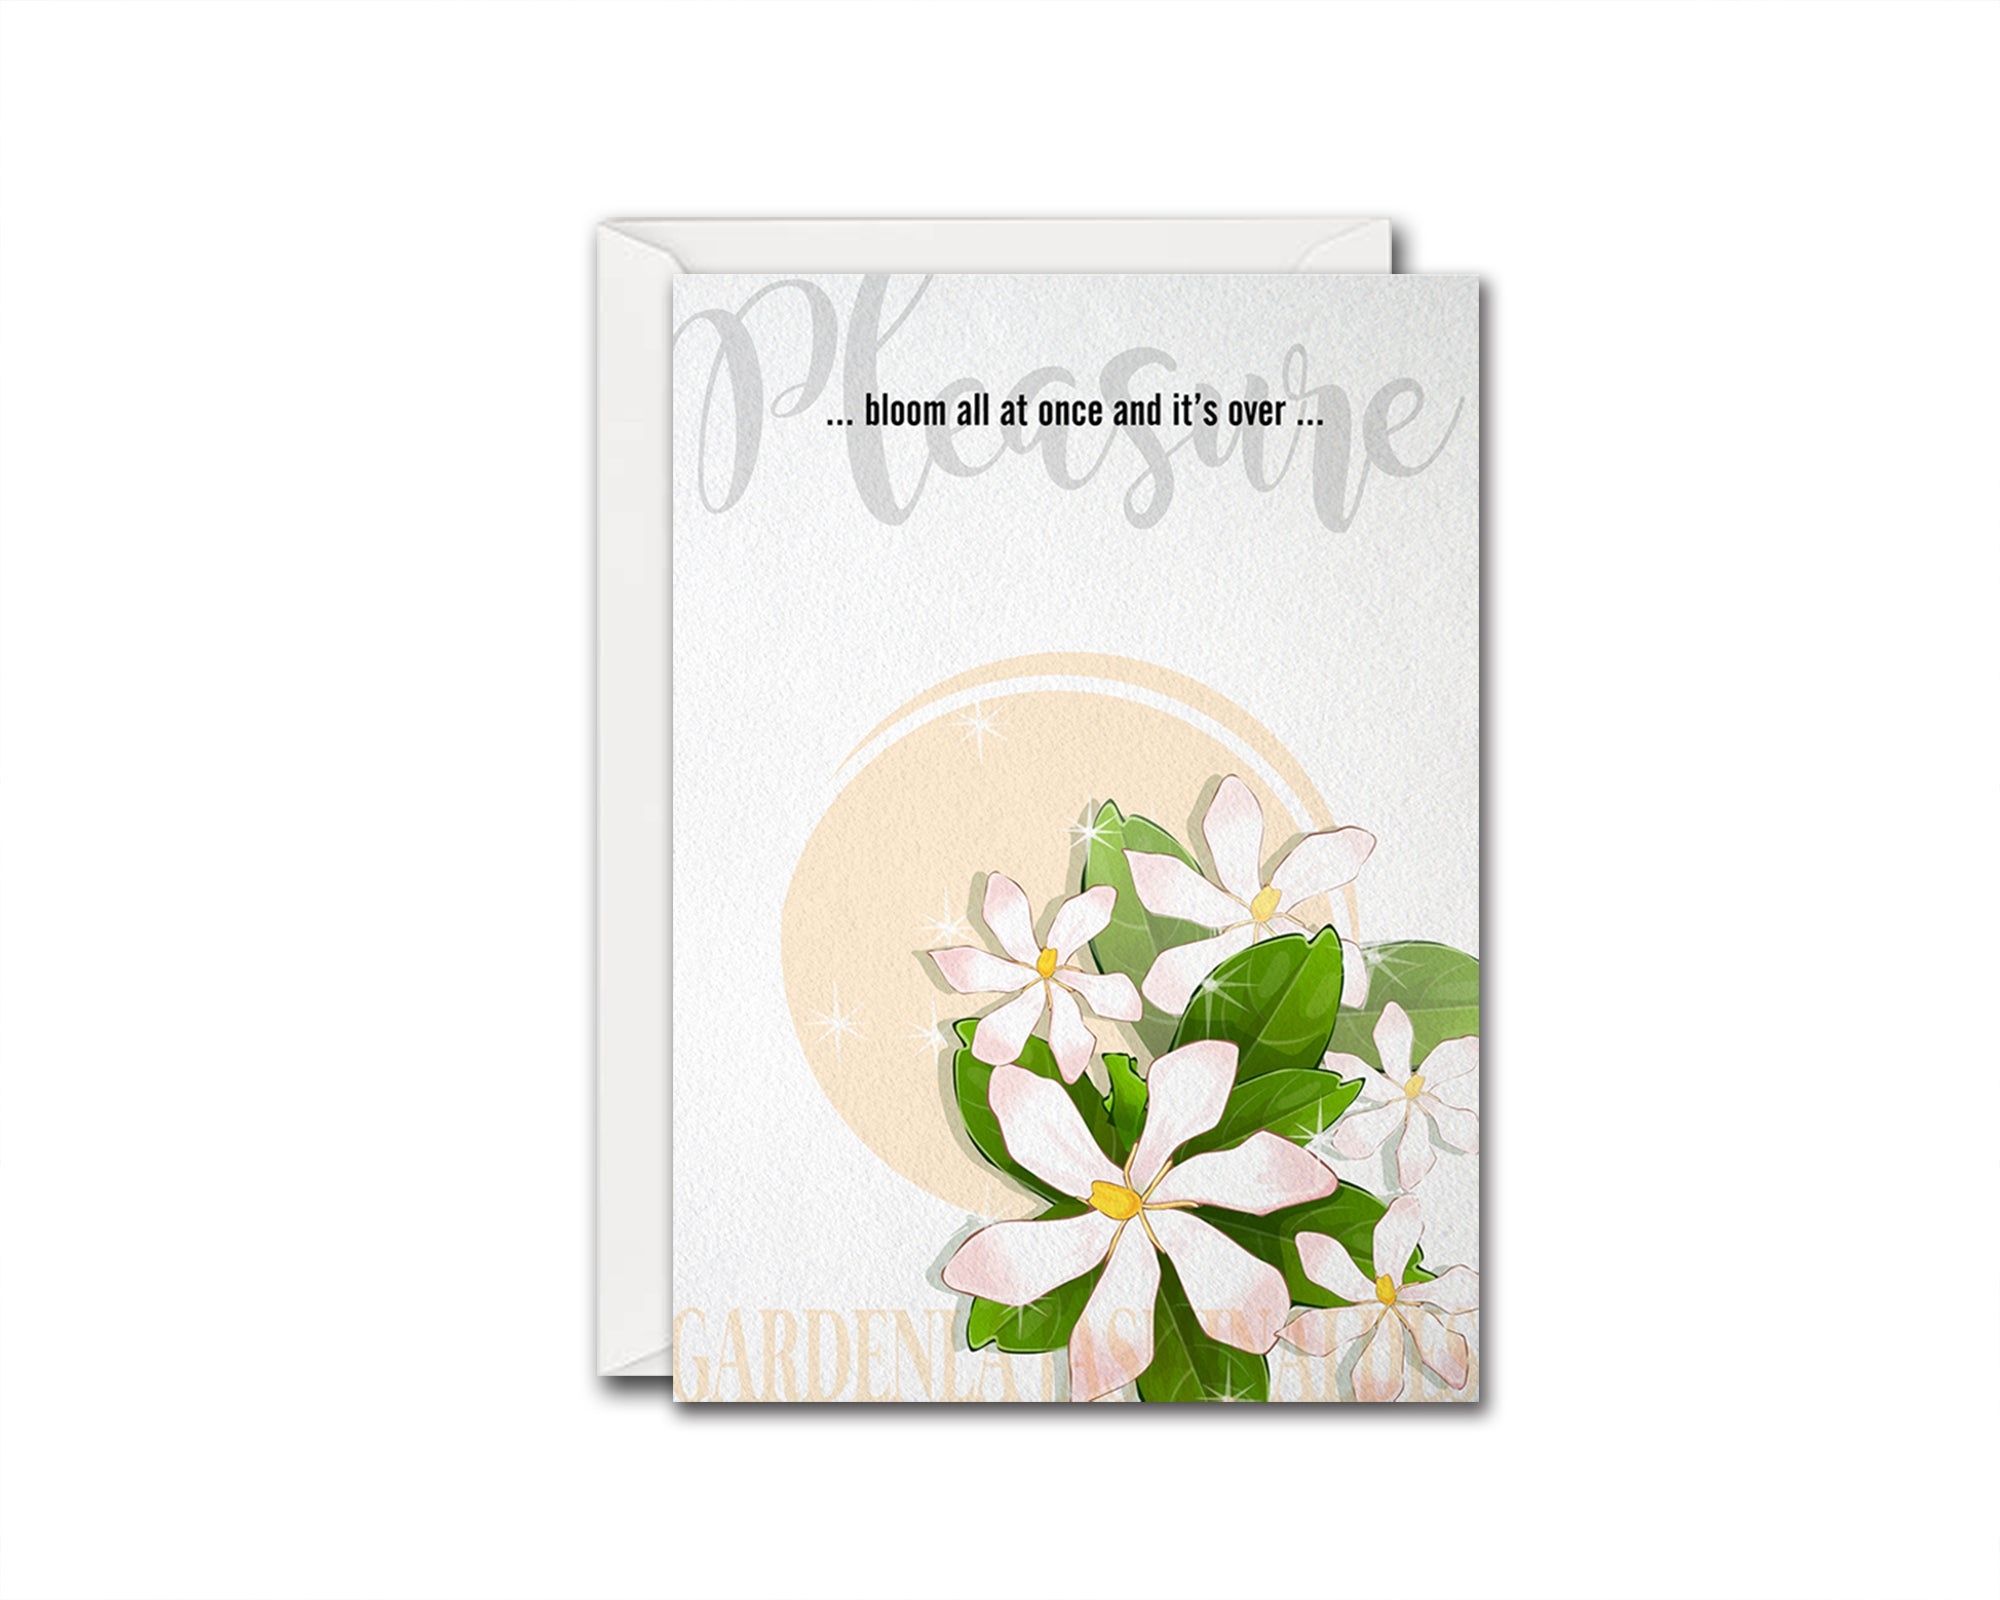 Gardenla Jasminaldes Flower Meanings Symbolism Customized Gift Cards